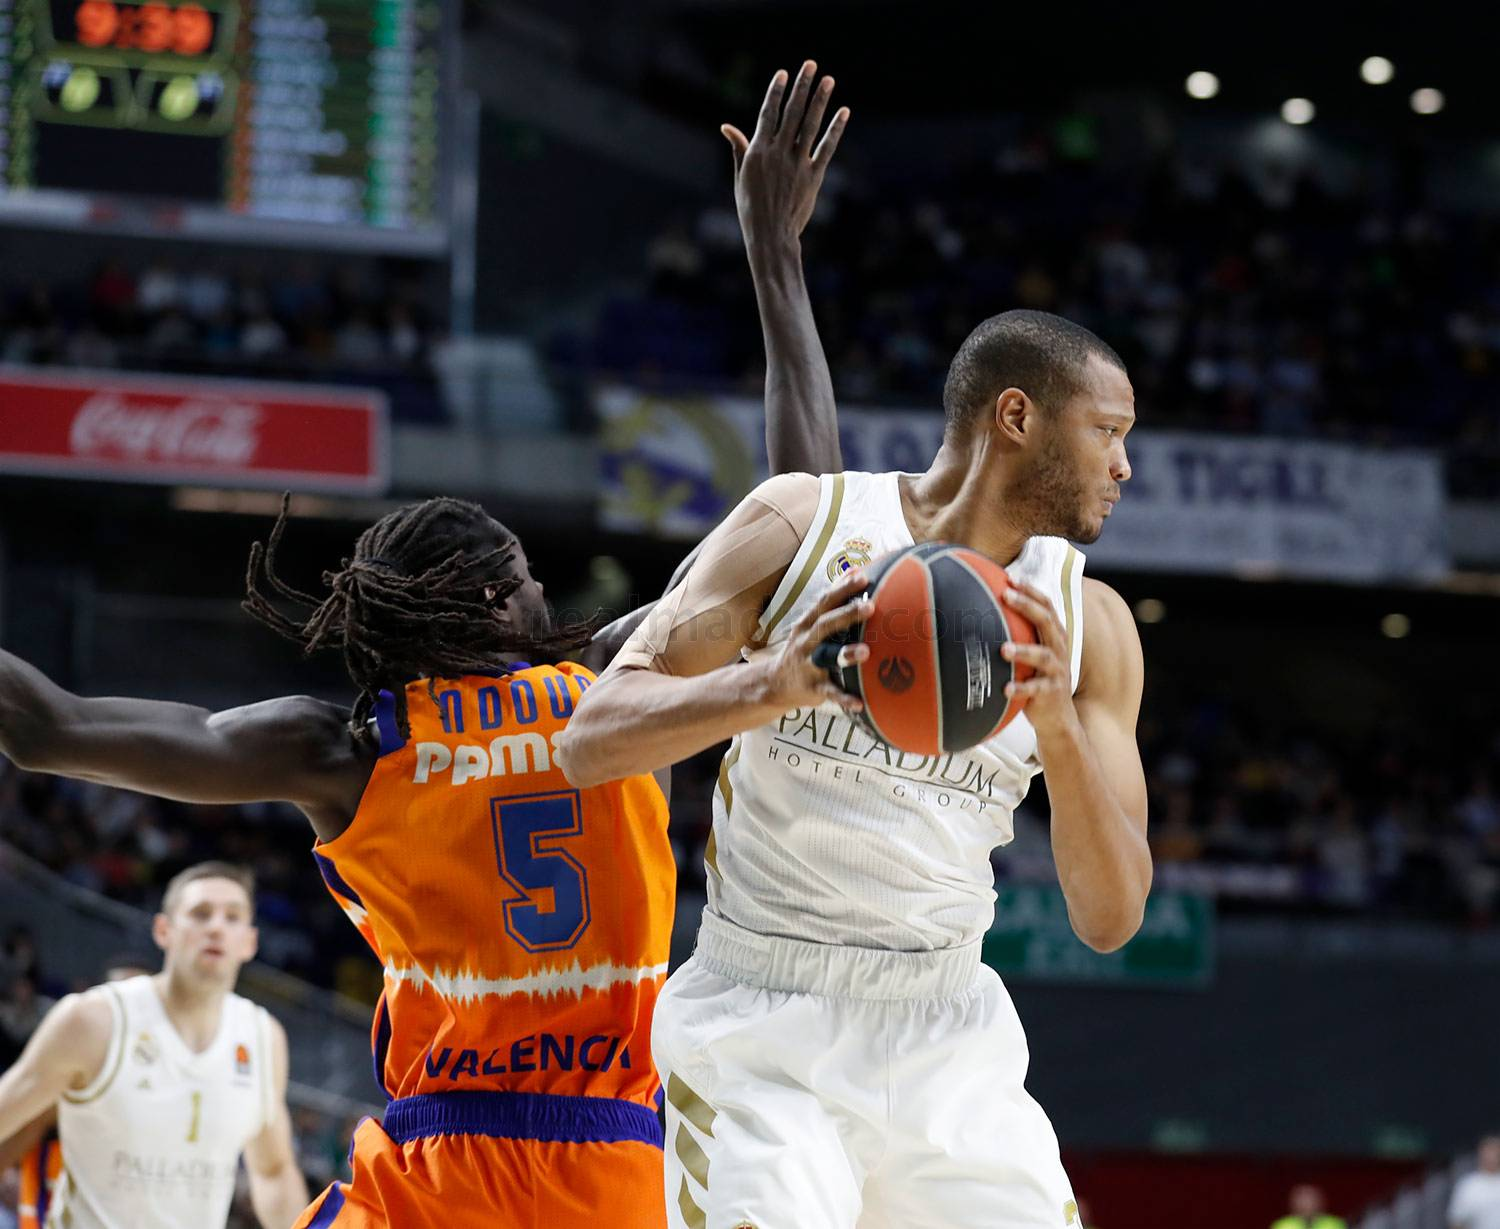 Real Madrid - Real Madrid - Valencia Basket - 05-12-2019